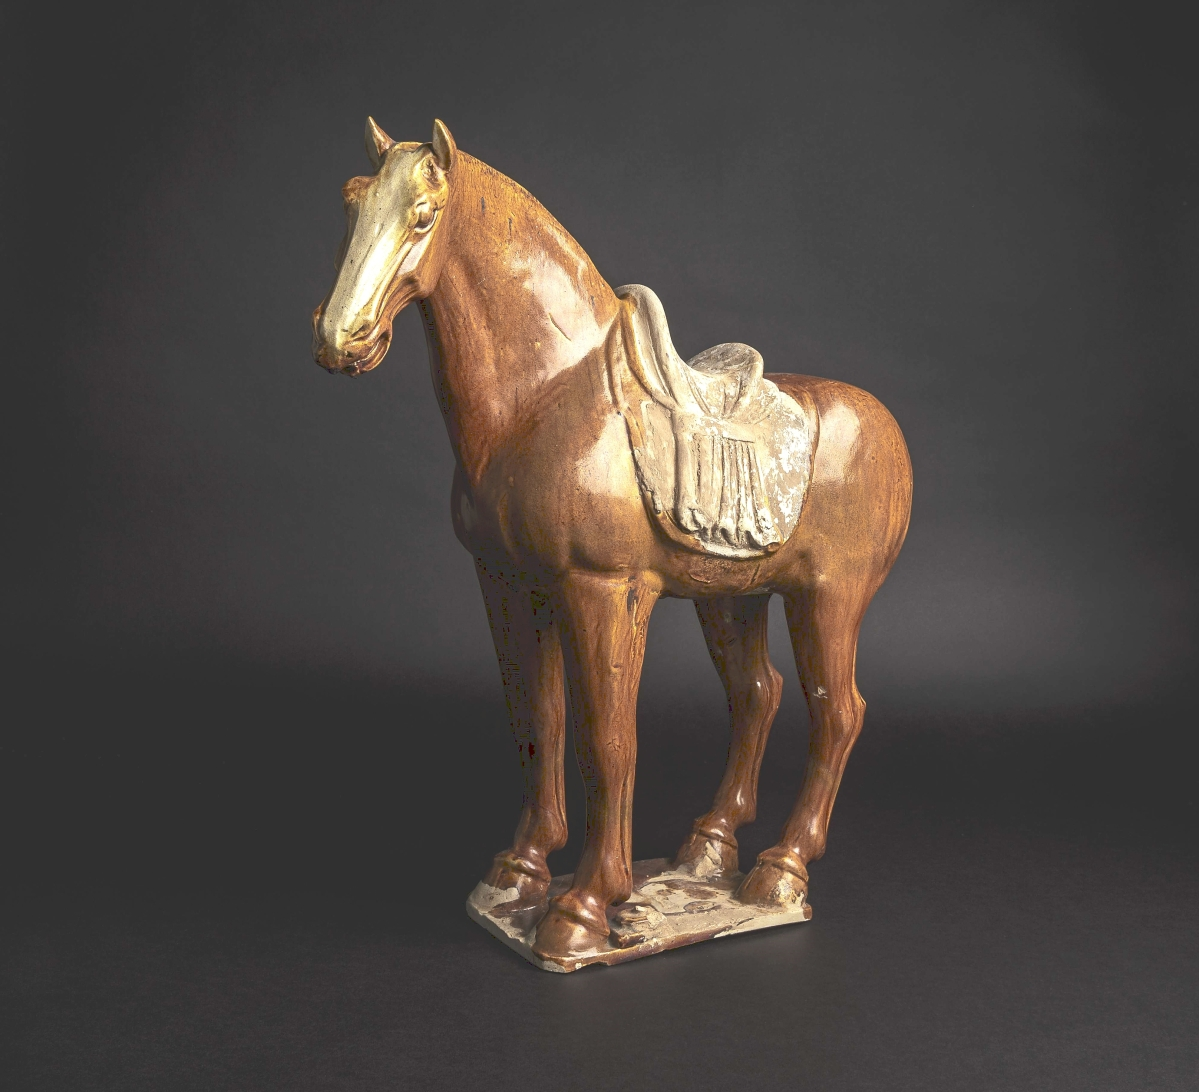 The amount of $36,590 was enough to win this nearly 19-inch-tall Chinese Tang dynasty (618-906 CE) horse, which had a brown-colored glaze over most of its body. It had provenance to a South German private collection as well as a Viennese private collection.